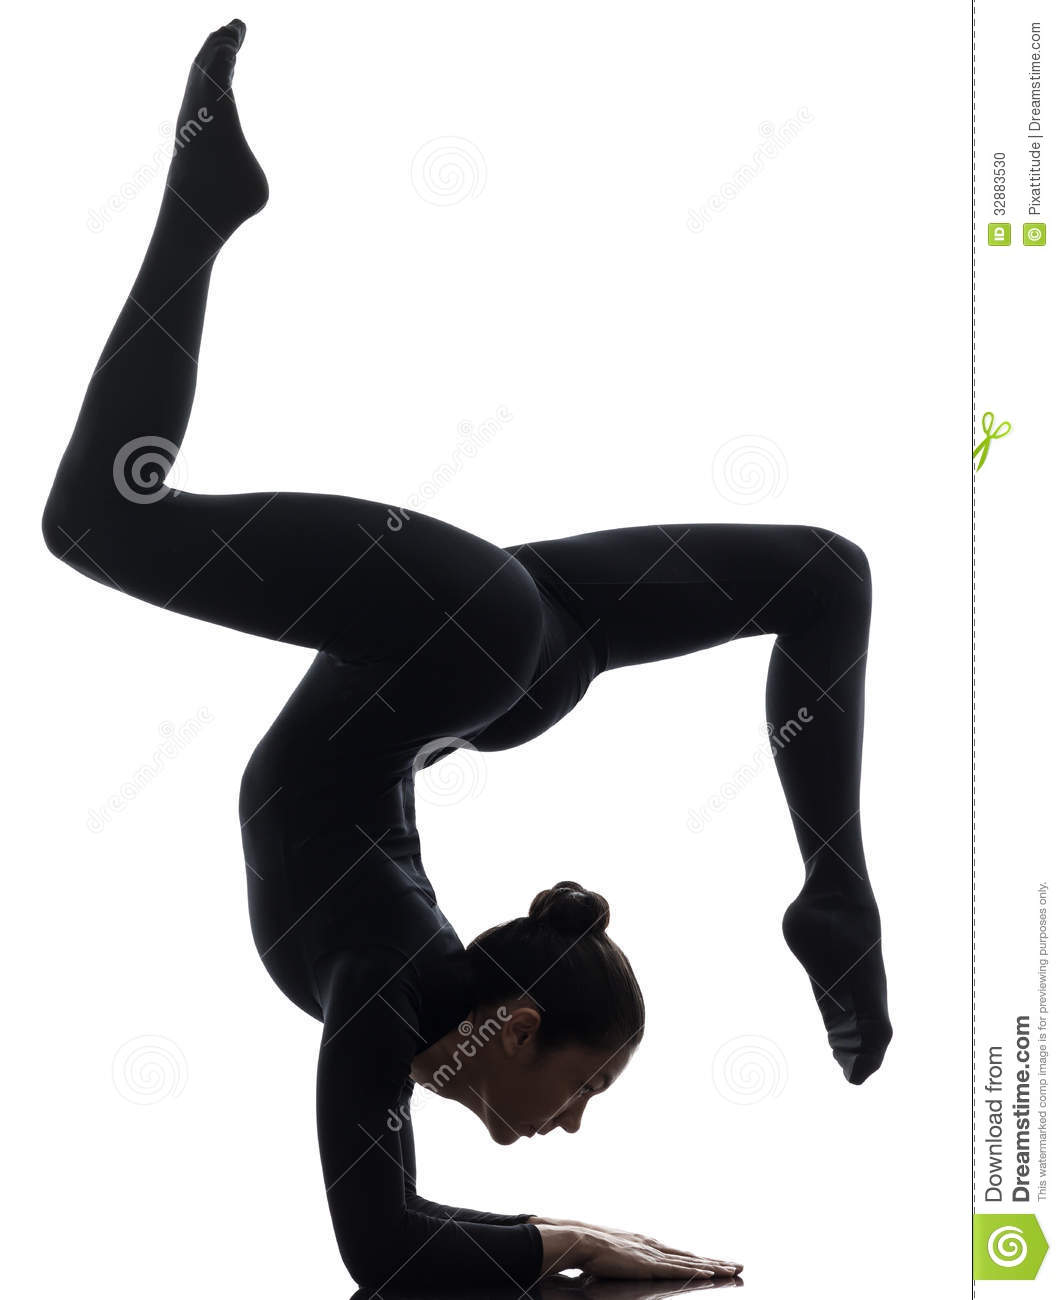 Gymnast clipart gymnastics handstand Images silhouette Clipart yoga Free